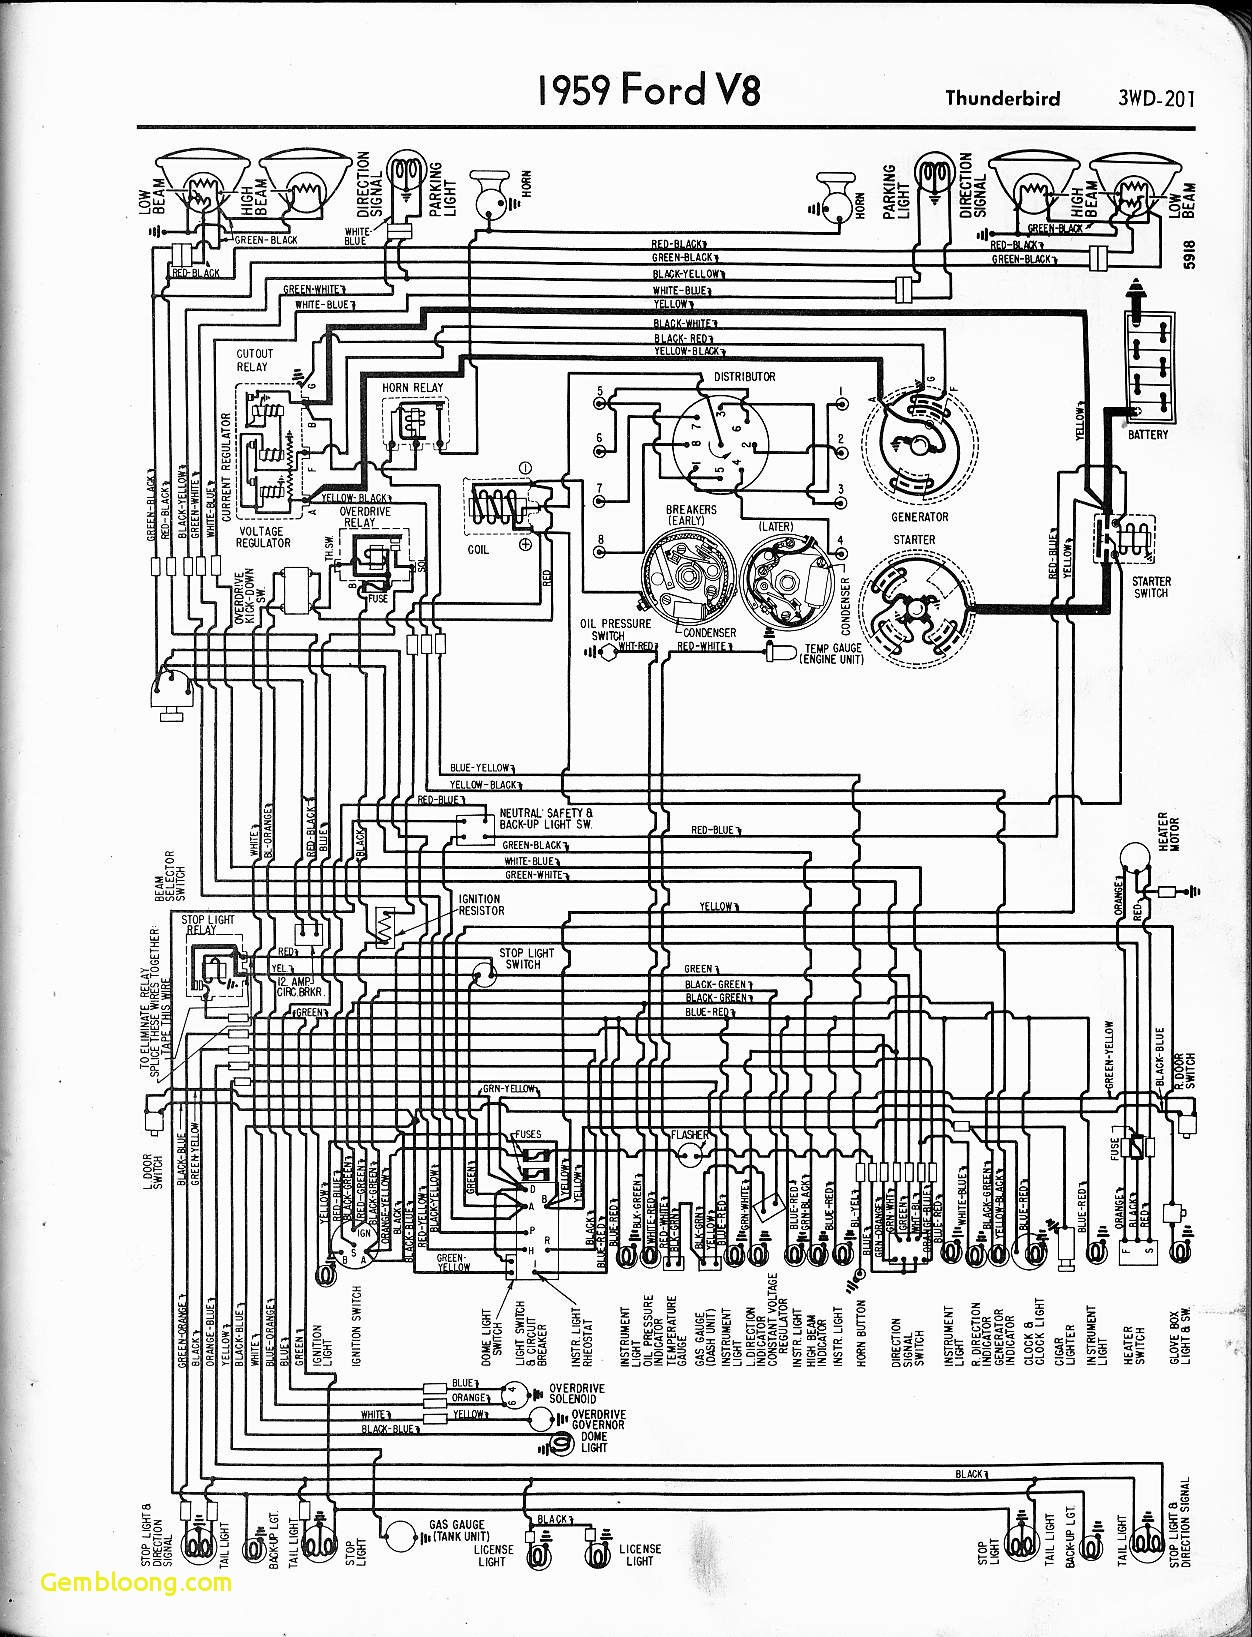 2006 F150 Engine Diagram Download ford Trucks Wiring Diagrams ford F150 Wiring Diagrams Best Of 2006 F150 Engine Diagram Free ford Trucks Wiring Diagrams Wiring Diagram for ford F150